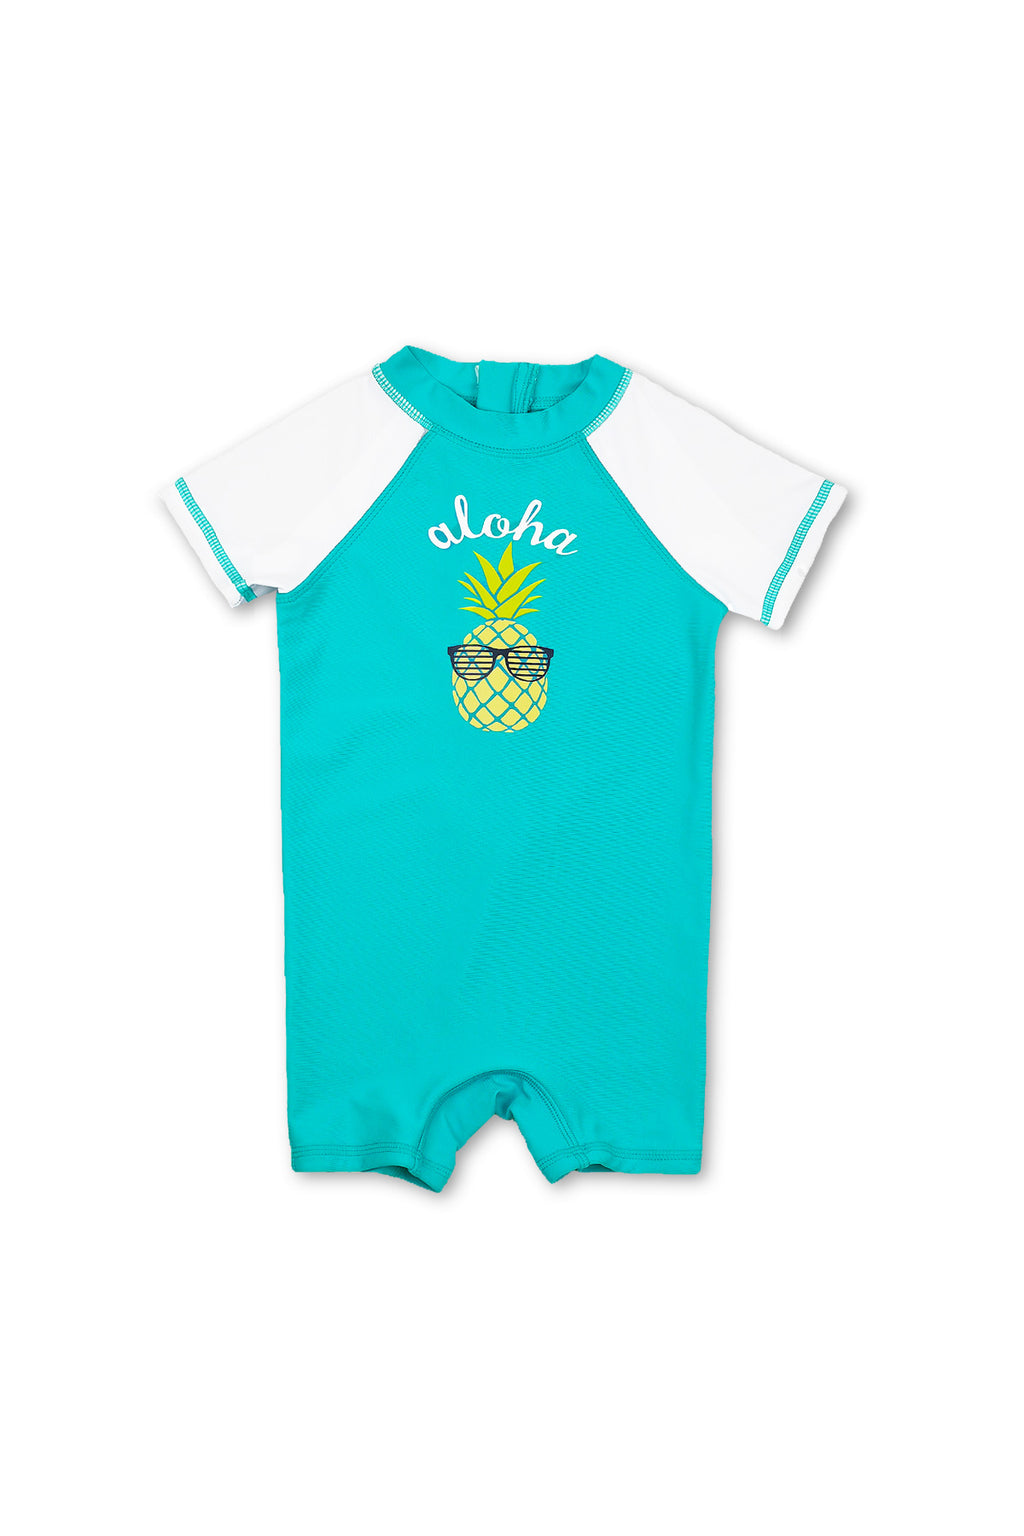 Boys Aloha Pineapple Short Sleeve Half Zip One Piece Swim Sunsuit, Blue